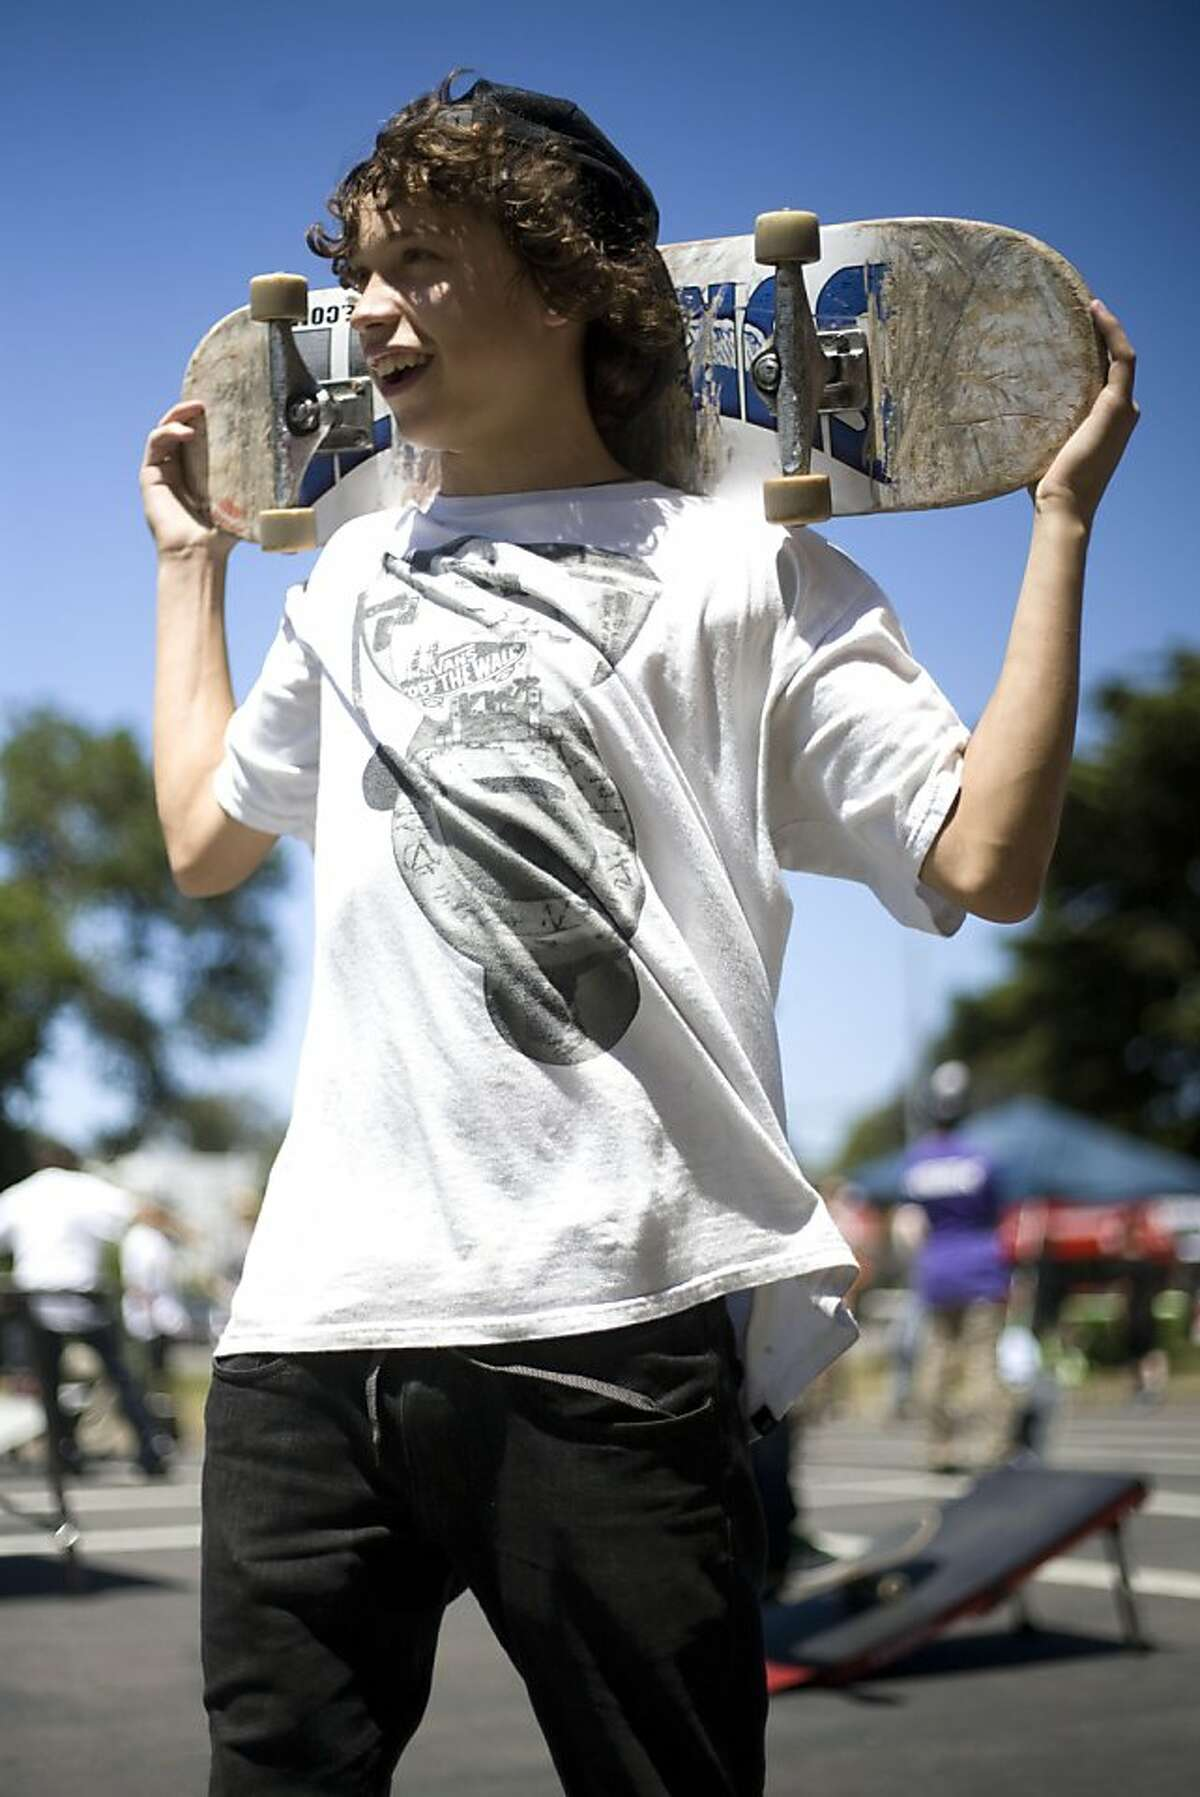 Eddie Robleto takes a break from skating at the temporary skateboard park on the closed-off stretch of Waller Street. The park opened on Tuesday, June 21. While neighbors have been fighting a skateboard park in that area for years, skateboarding advocates and city officials say the park is badly needed and will be a wholesome activity.